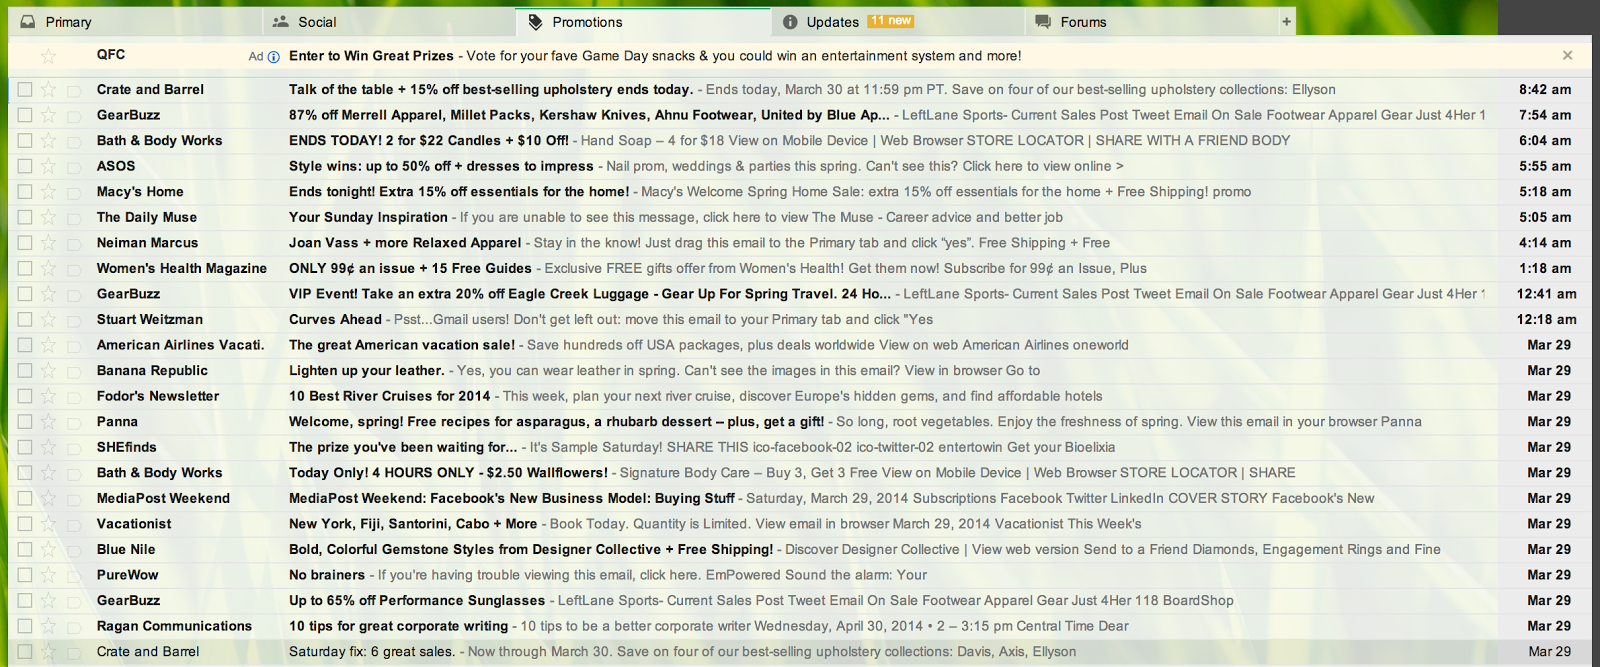 Screen Shot 2014-03-30 at 11.48.58 AM.png